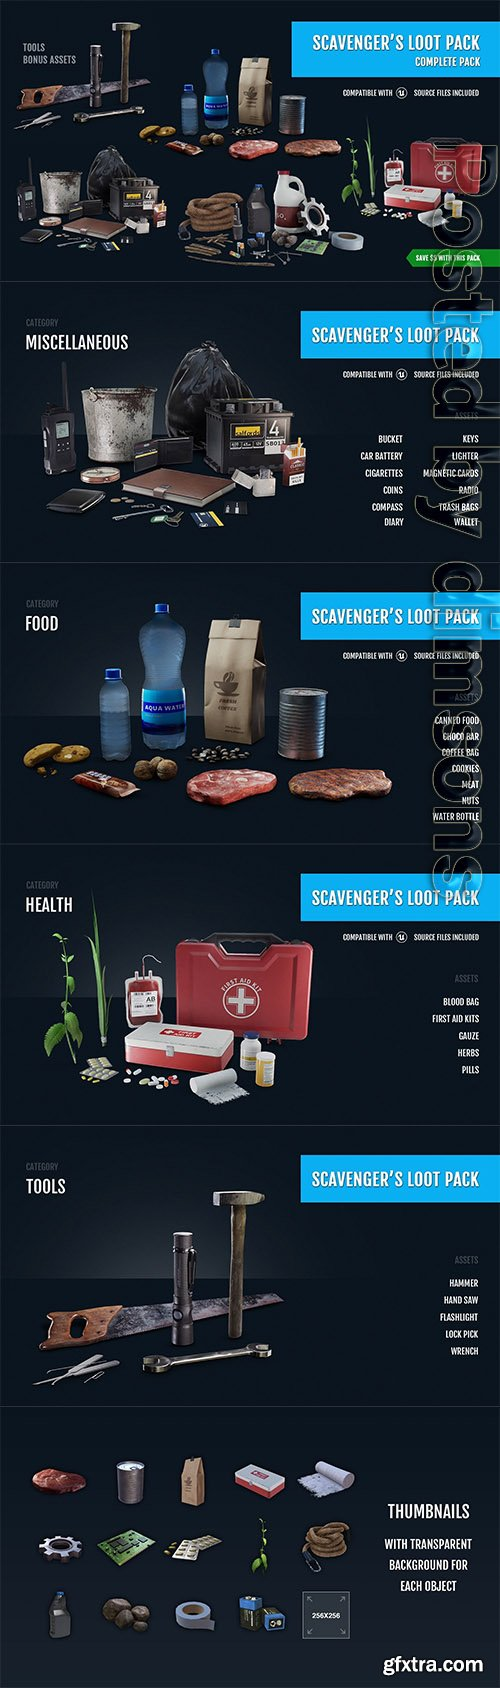 Cgtrader - Scavengers Loot Pack - Complete Pack Low-poly 3D model